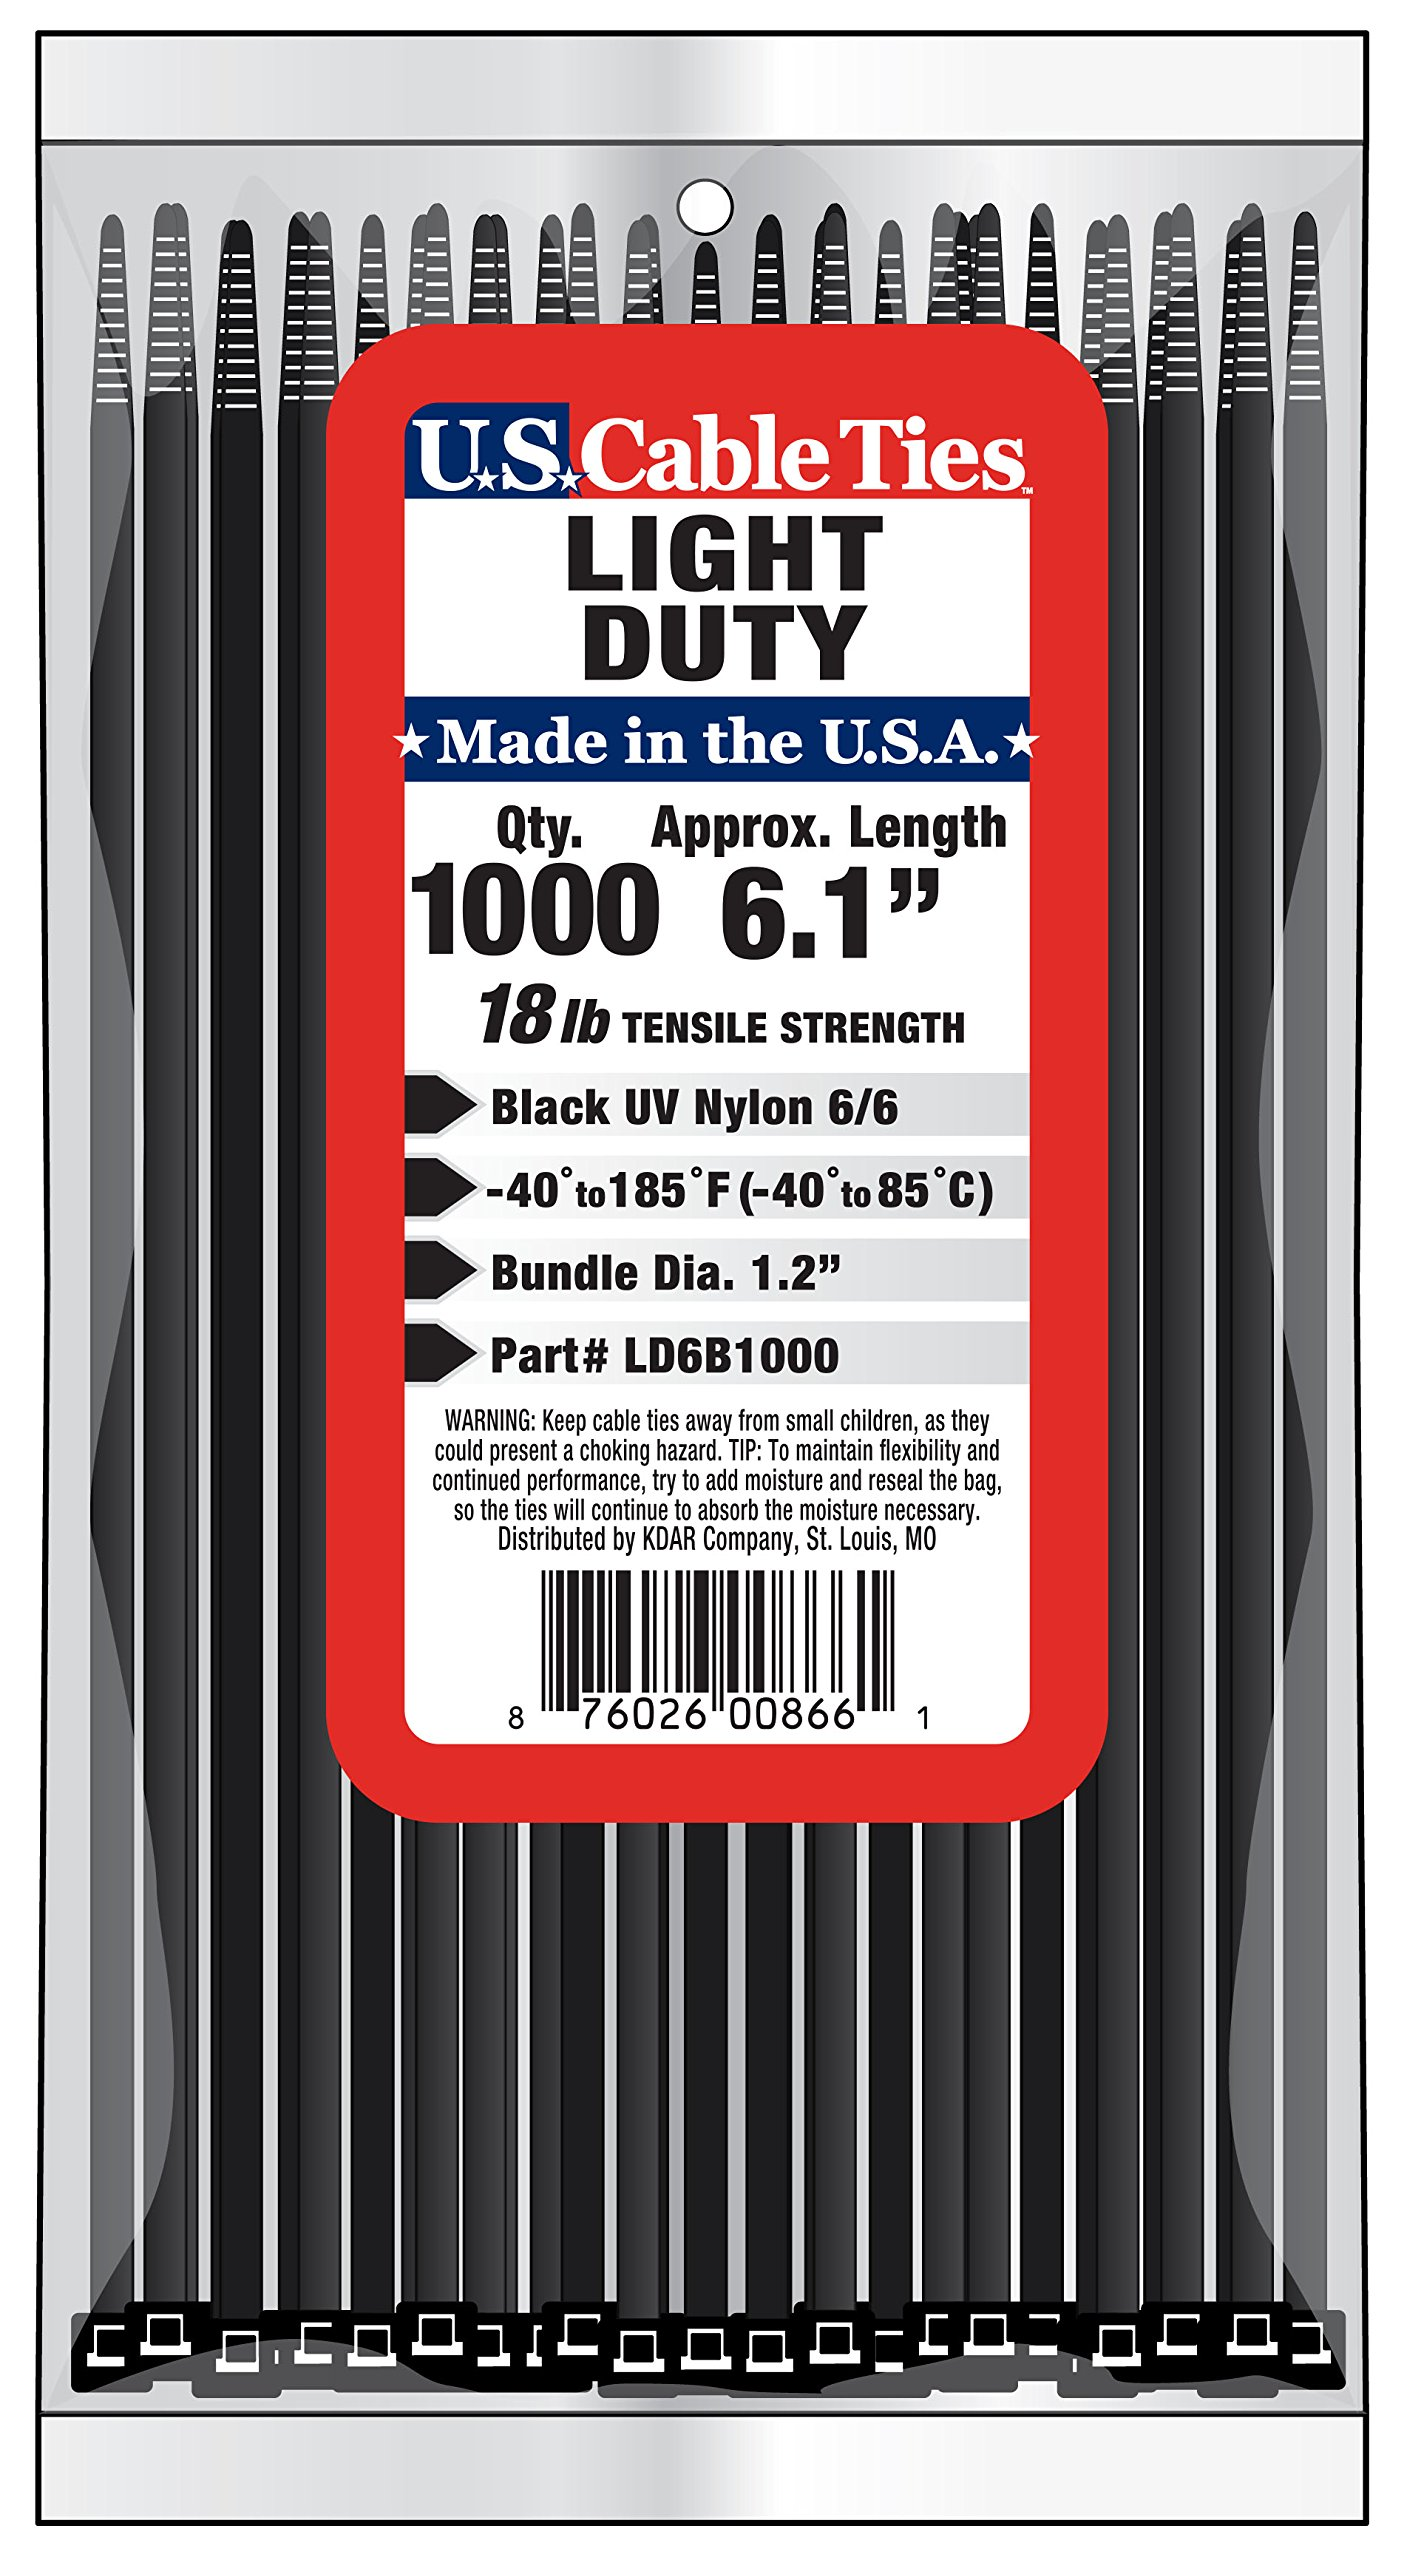 US Cable Ties LD6B1000 6-Inch Light Duty Cable Ties, UV Black, 1000-Pack